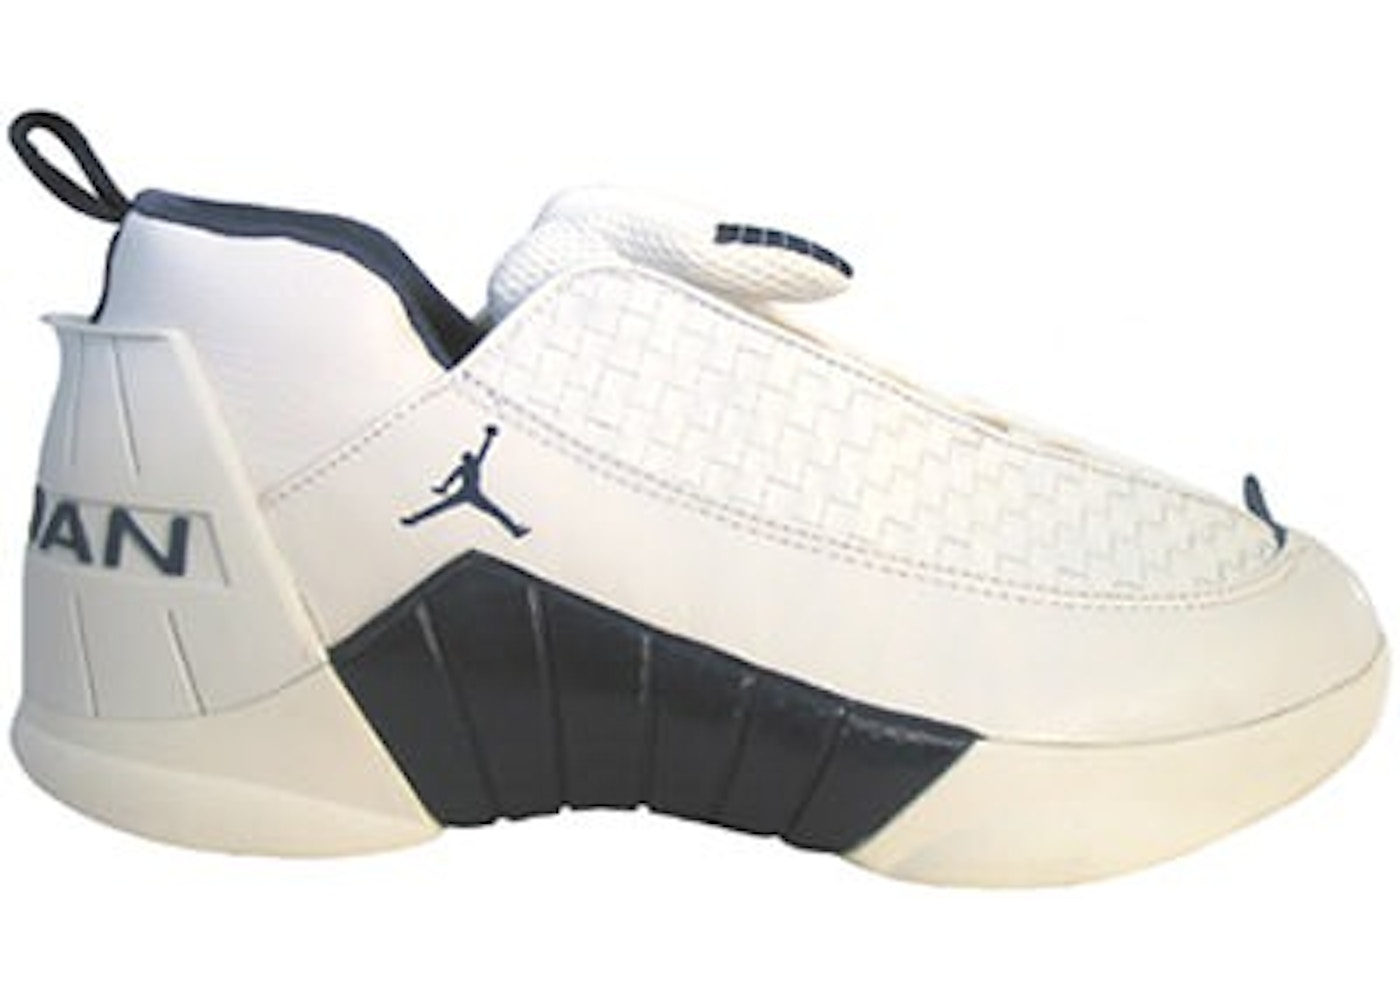 8358d4fd5b1 Air Jordan 15 Shoes - Price Premium